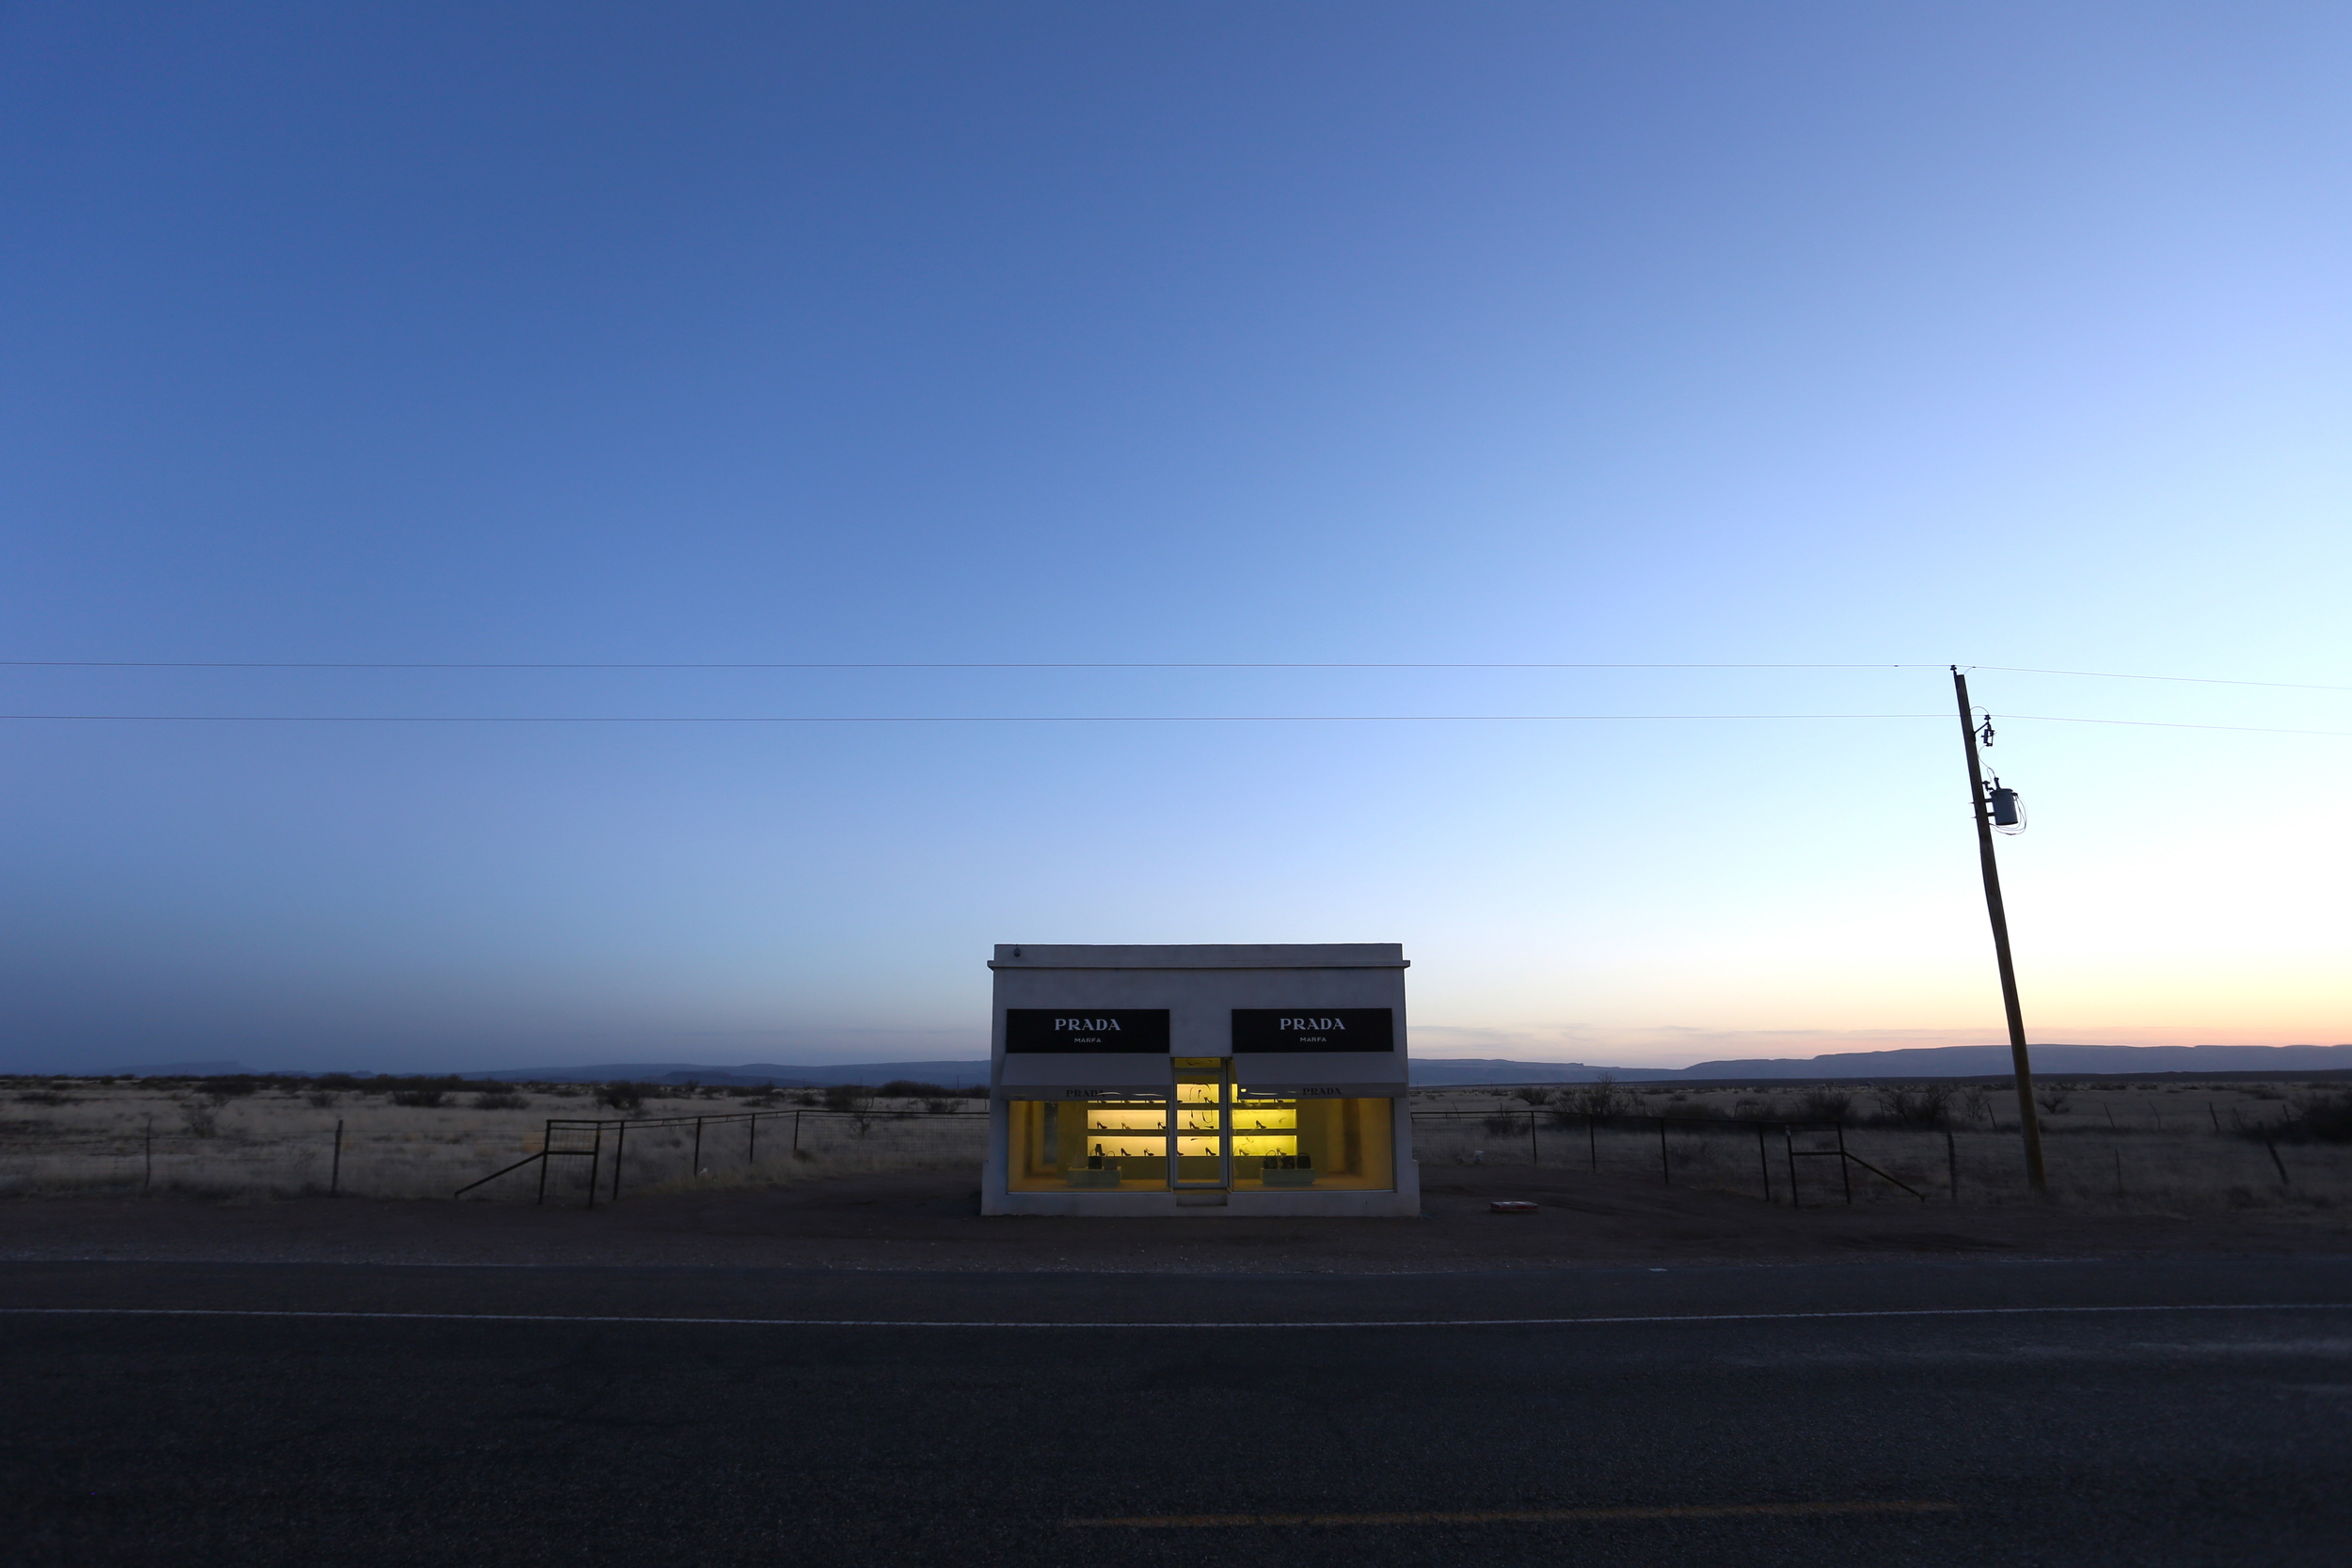 PRADA Marfa, by Michael Elmgreen + Ingar Dragset